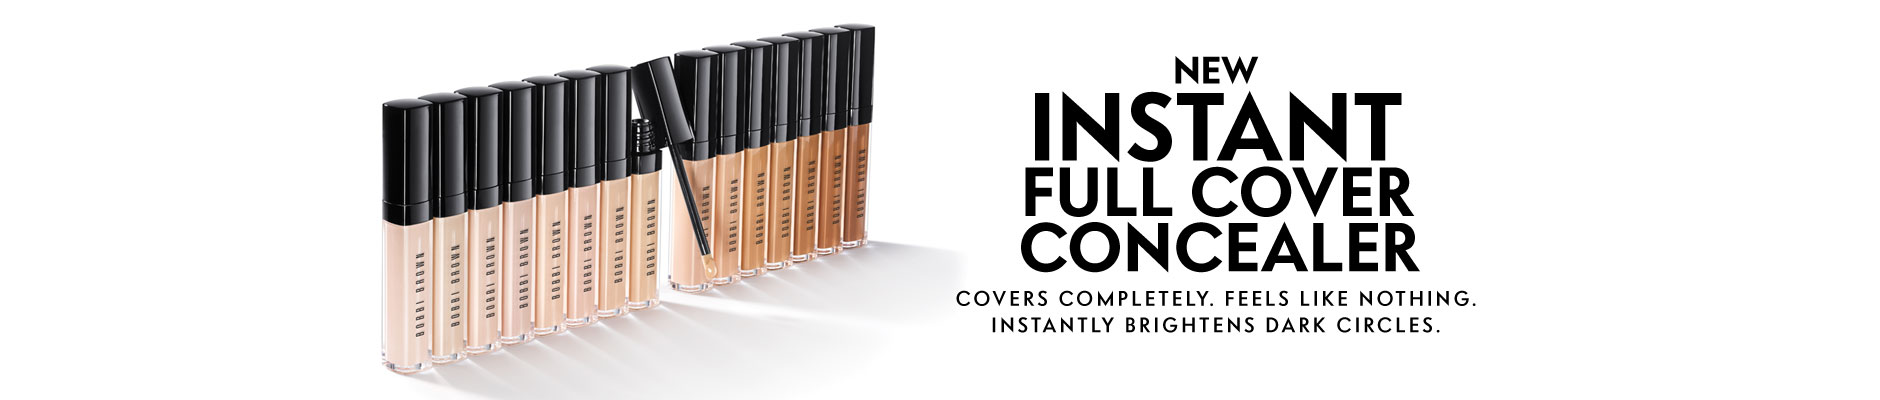 New Instant Full Cover Concealer - Covers completely. Feels like nothing. Instantly brightens dark circles.